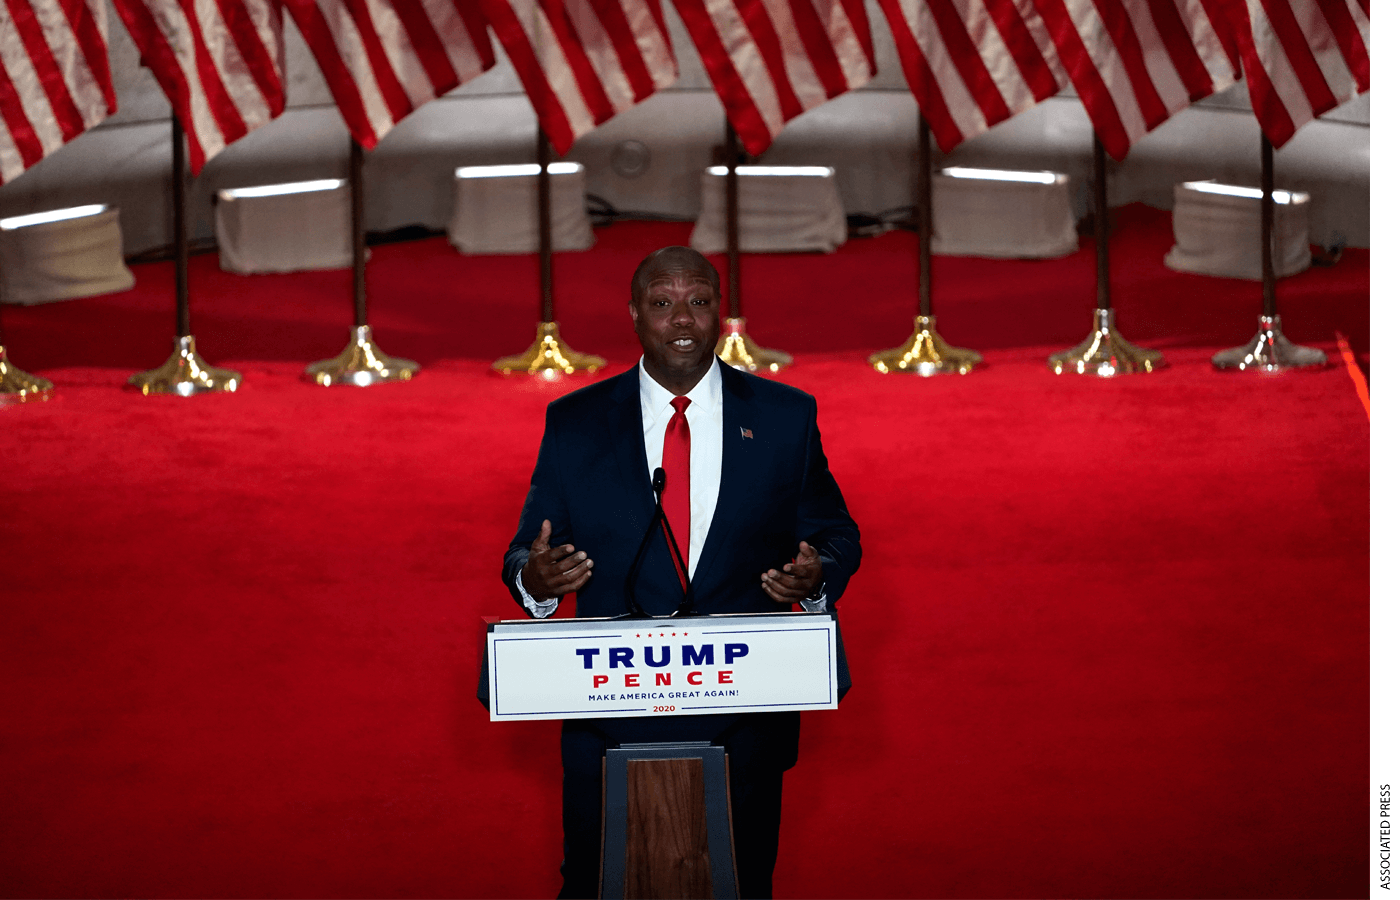 Senator Tim Scott speaking at a podium